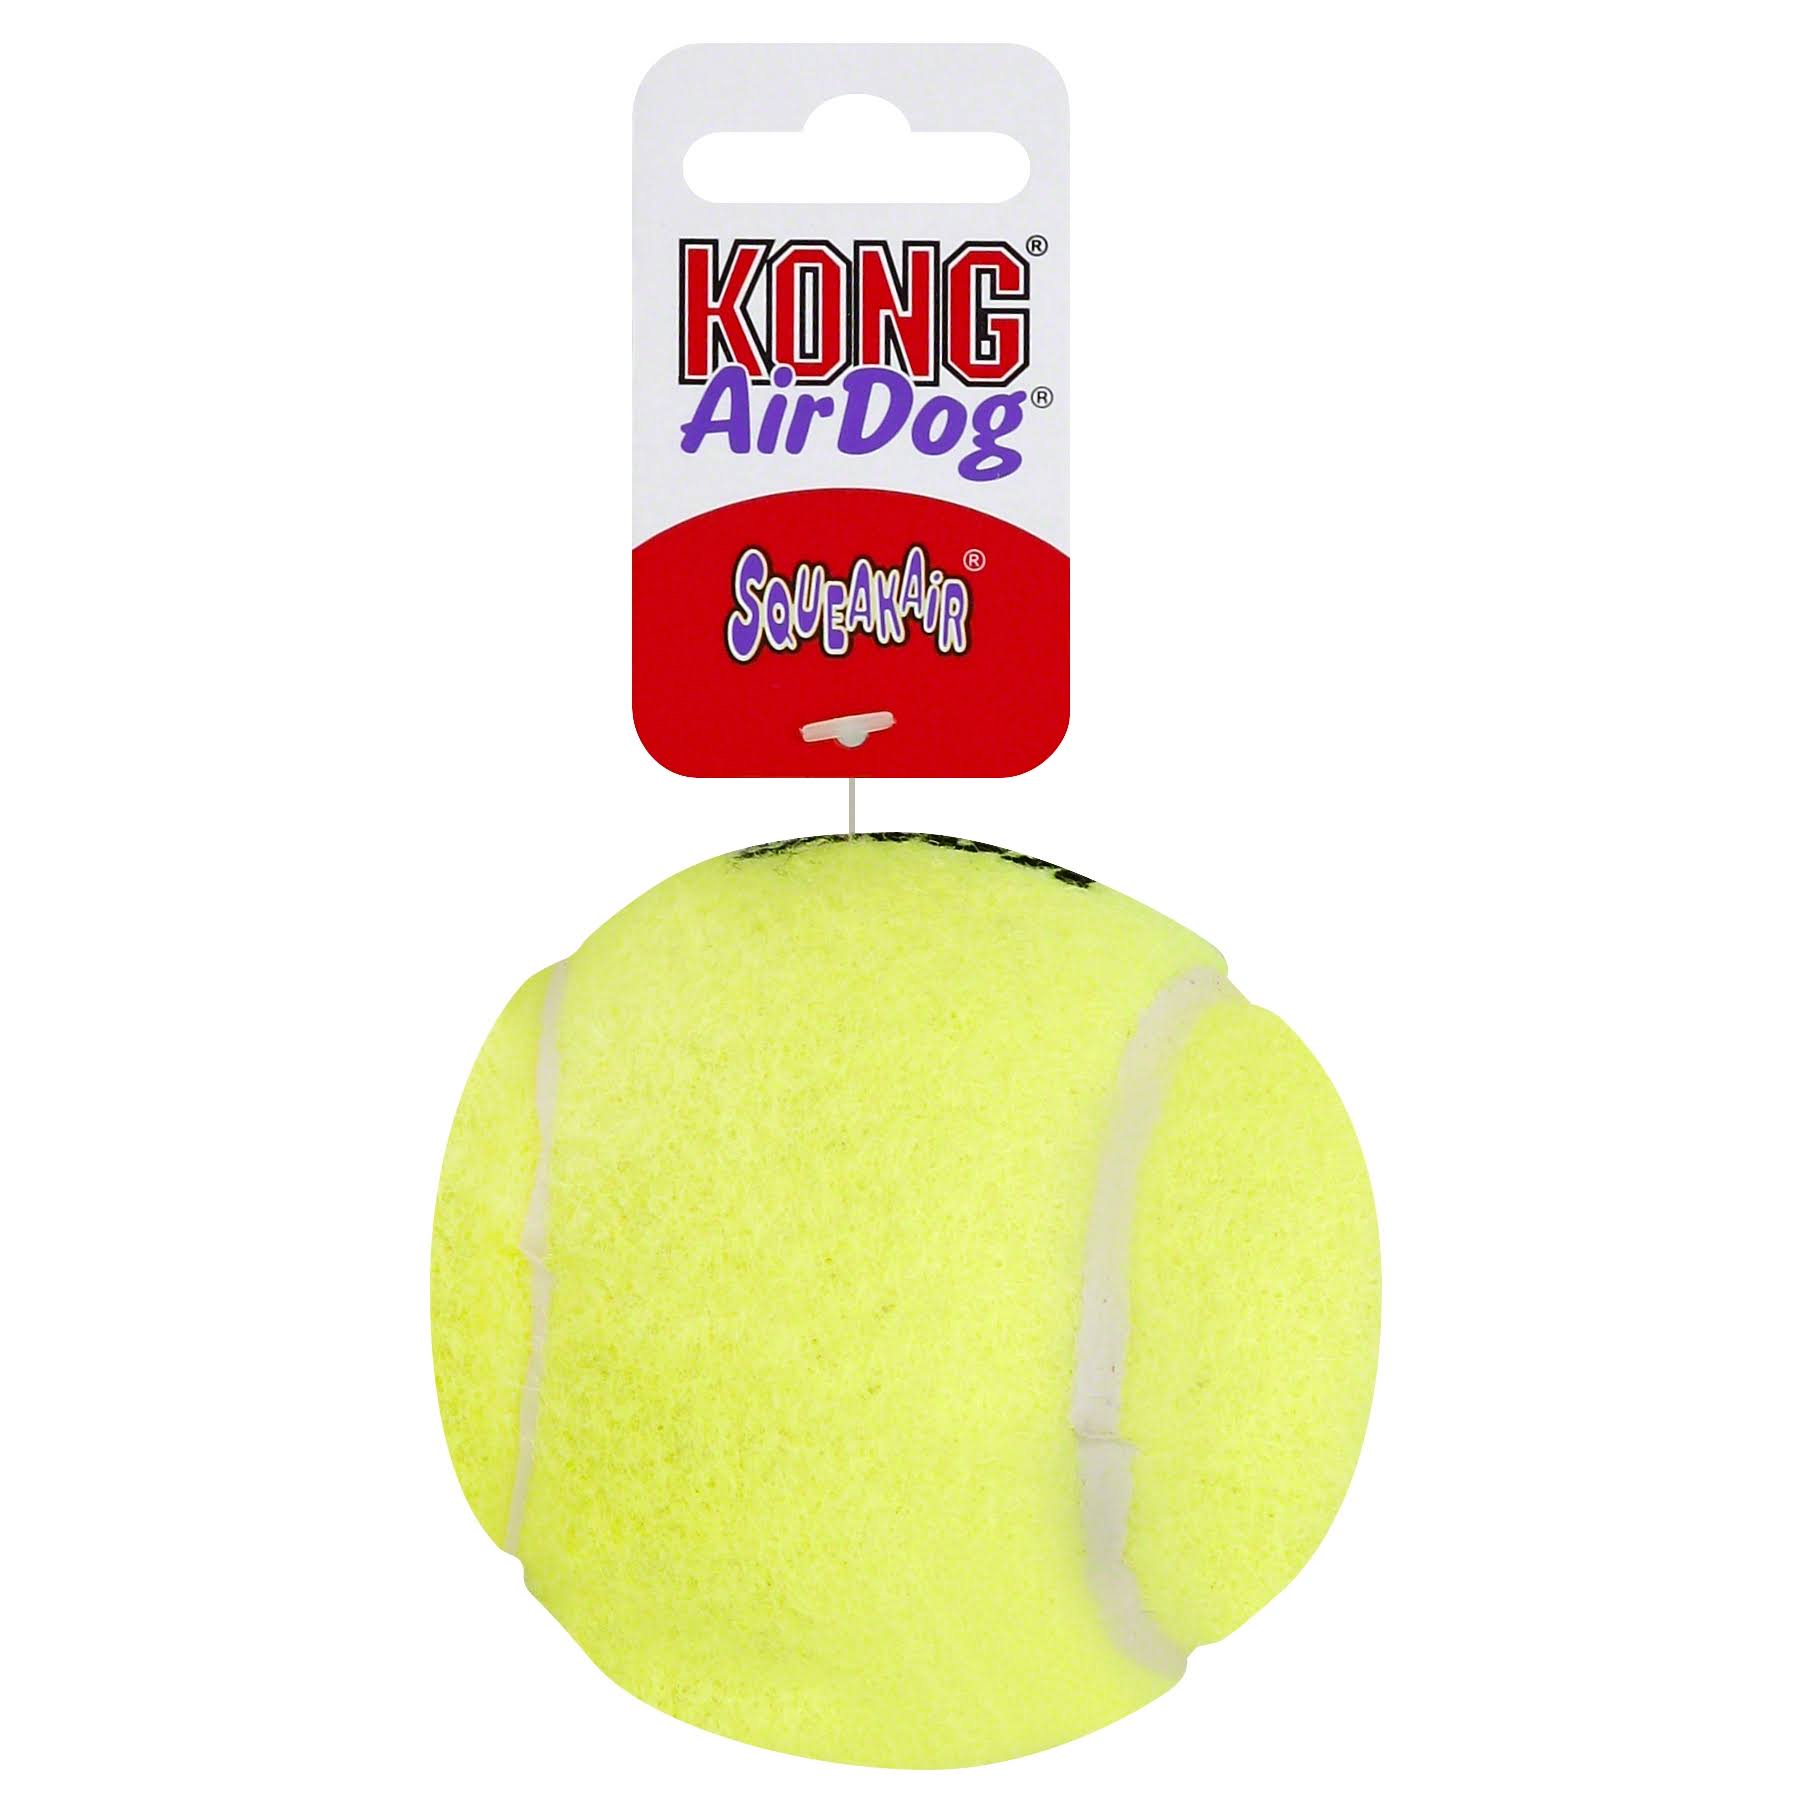 Kong Air Dog Squeakair Tennis Ball Dog Toy - Yellow, Large